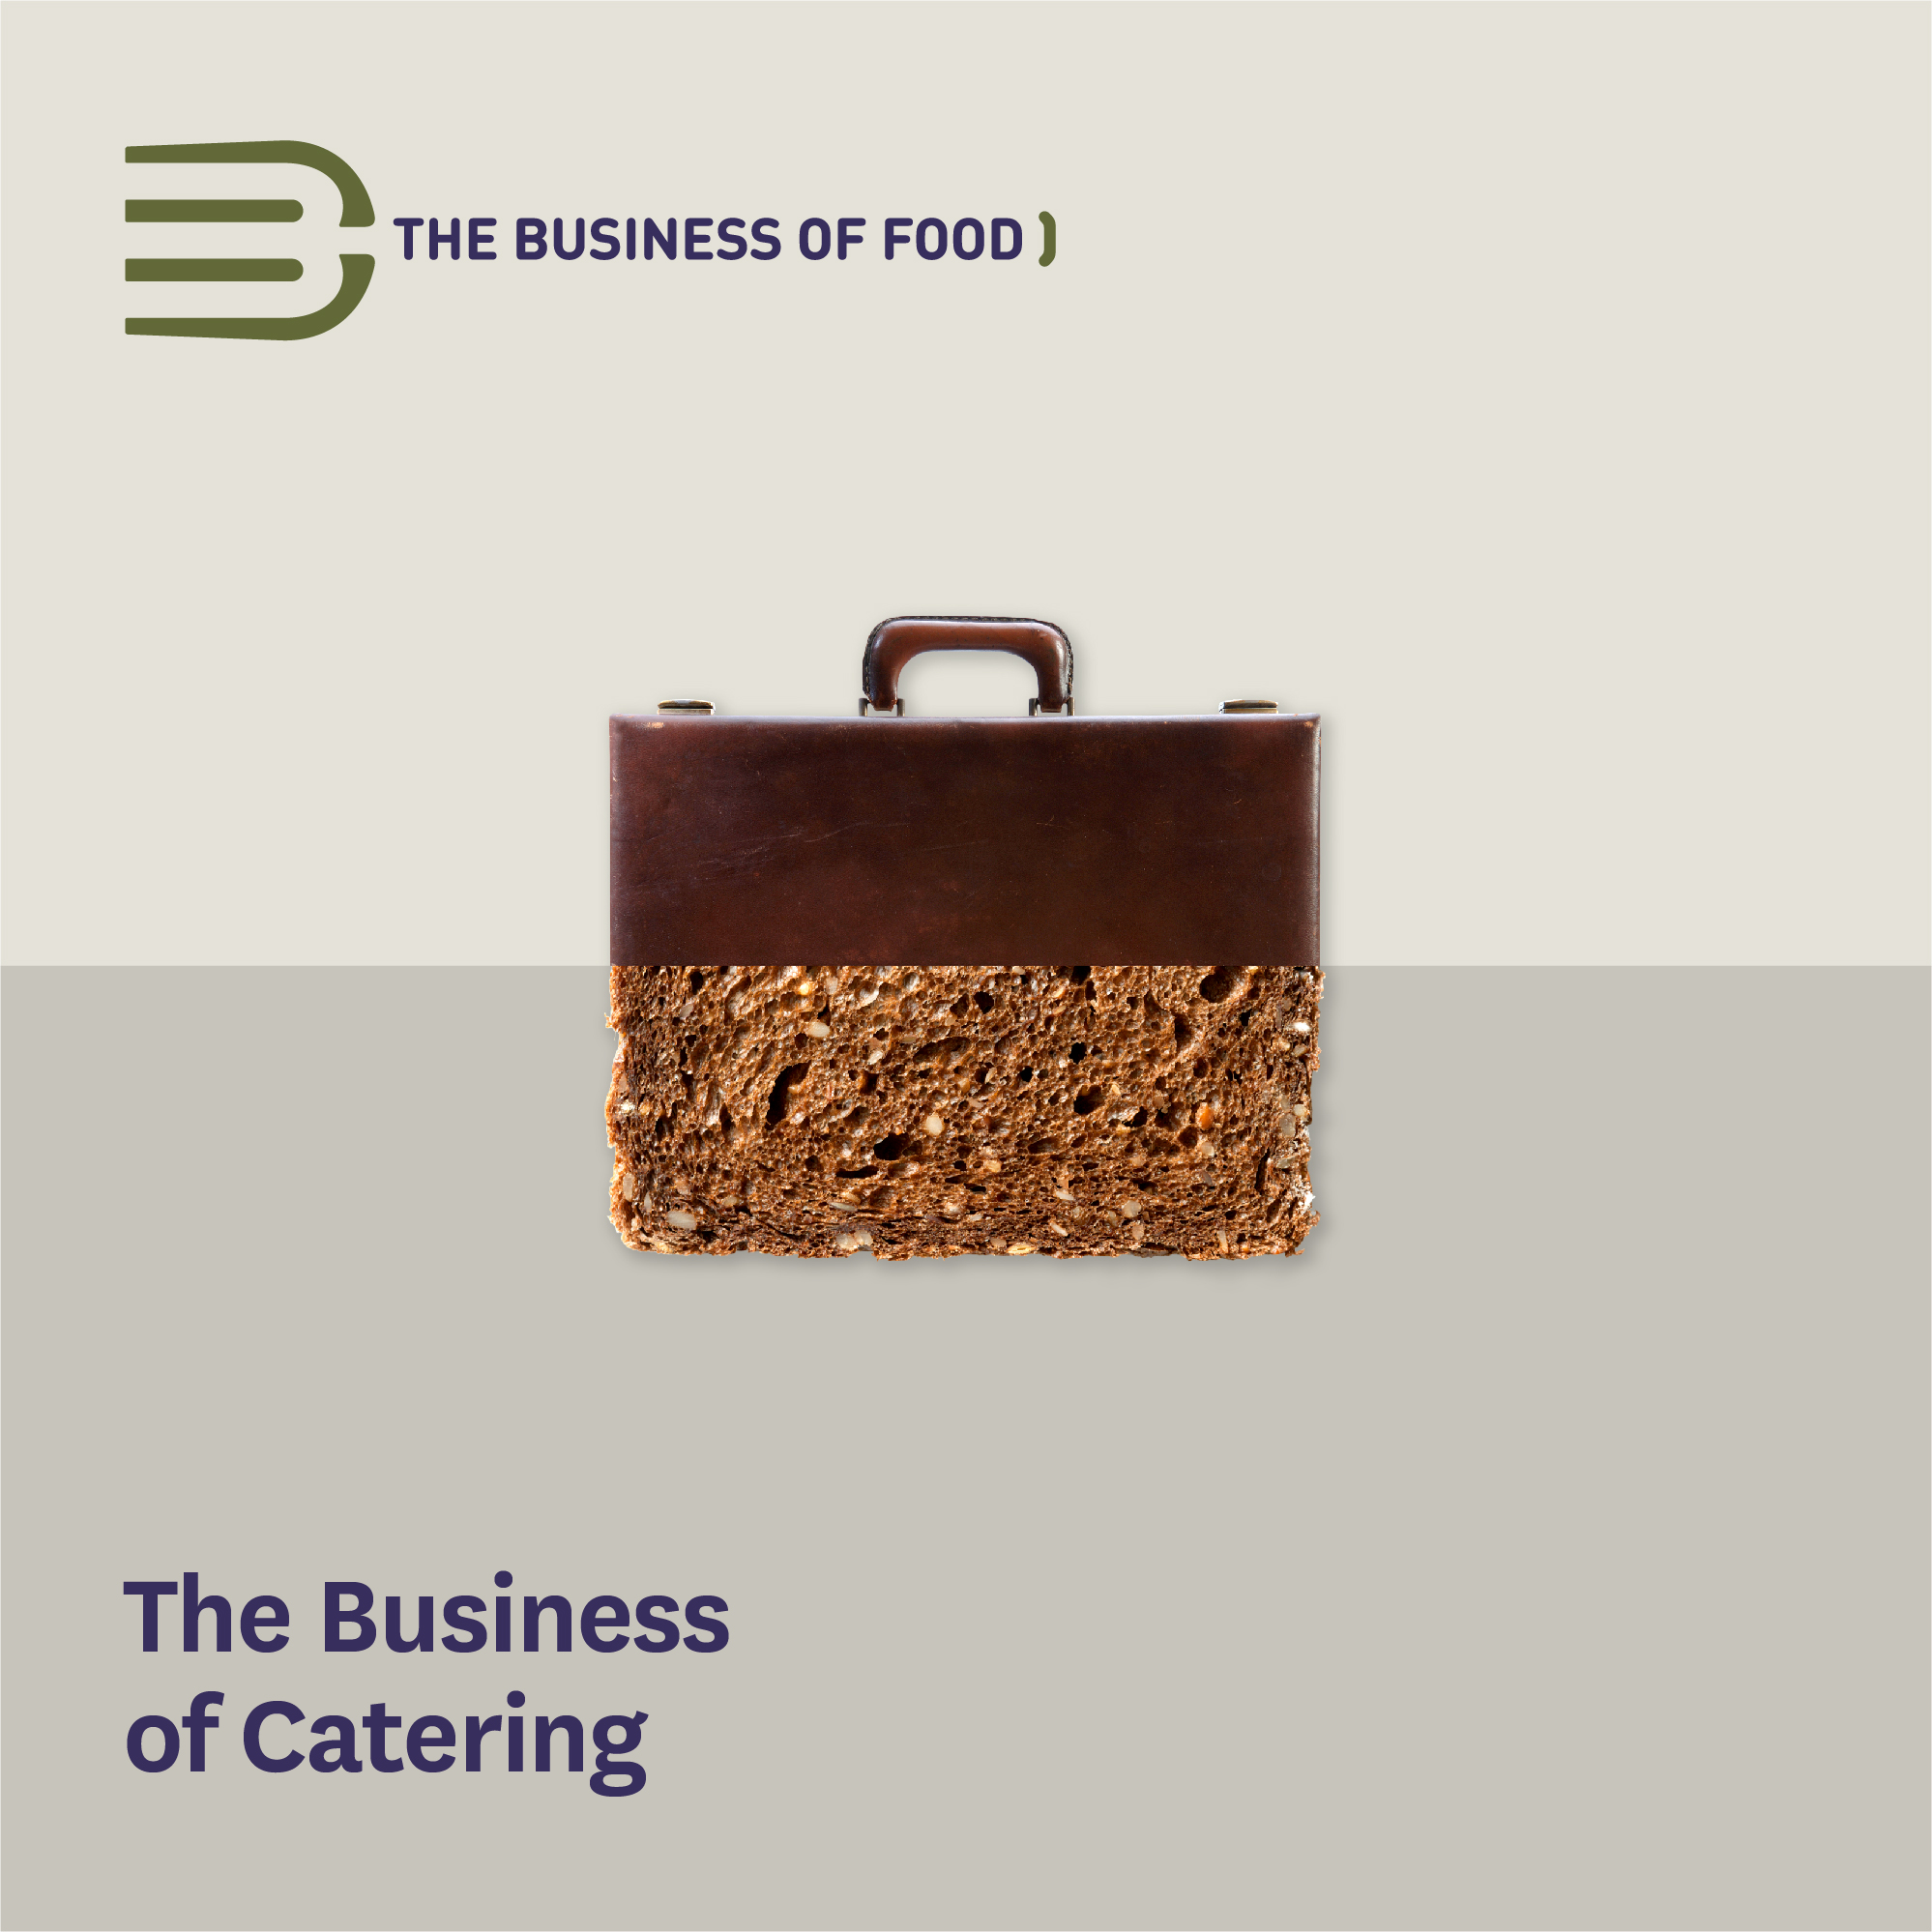 The Business of Catering (Oct) from NOTS.ie